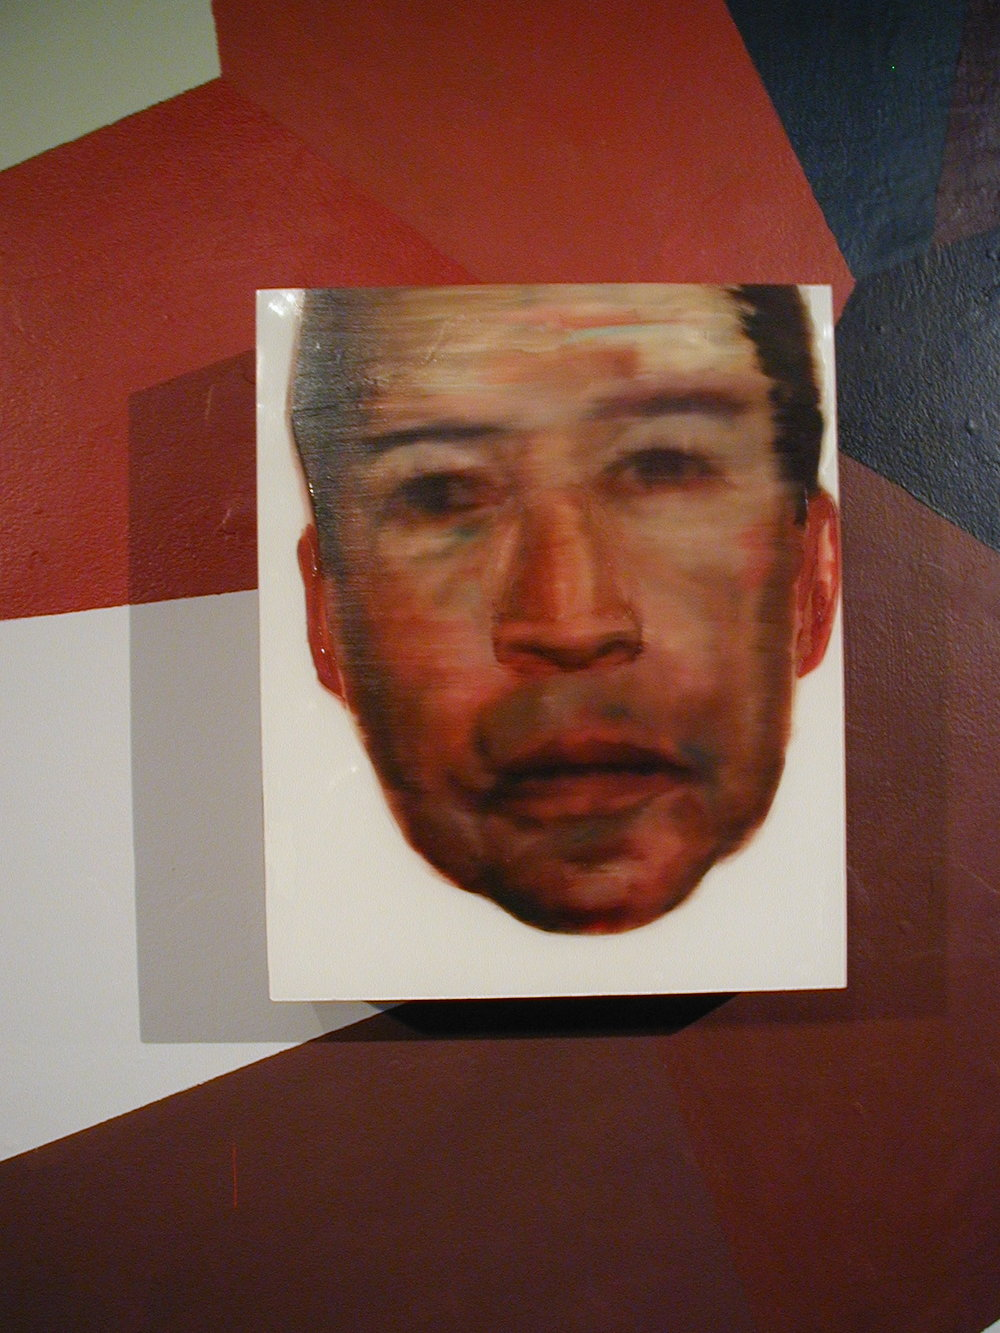 Dr. Wallace Huff, 2003, 16 x 12 x 4 in. (40.64 x 30.48 x 10.16 cm), oil on plastic